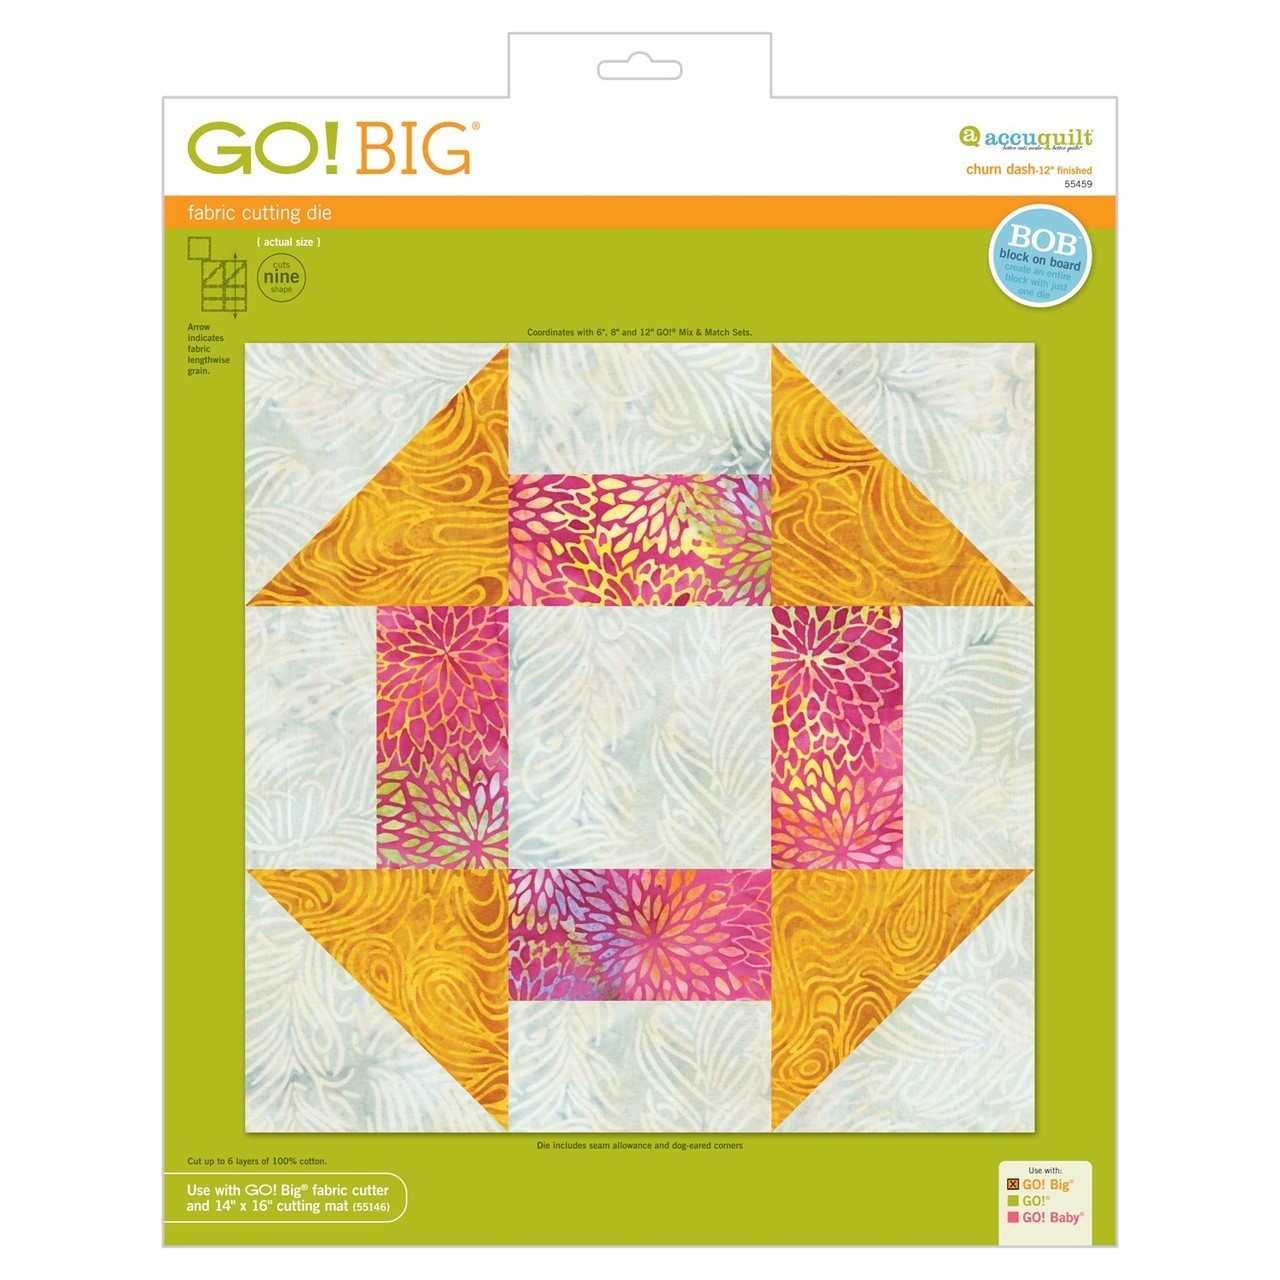 "Image of AccuQuilt Go! Die Big Churn Dash-12"" Finished 55459"